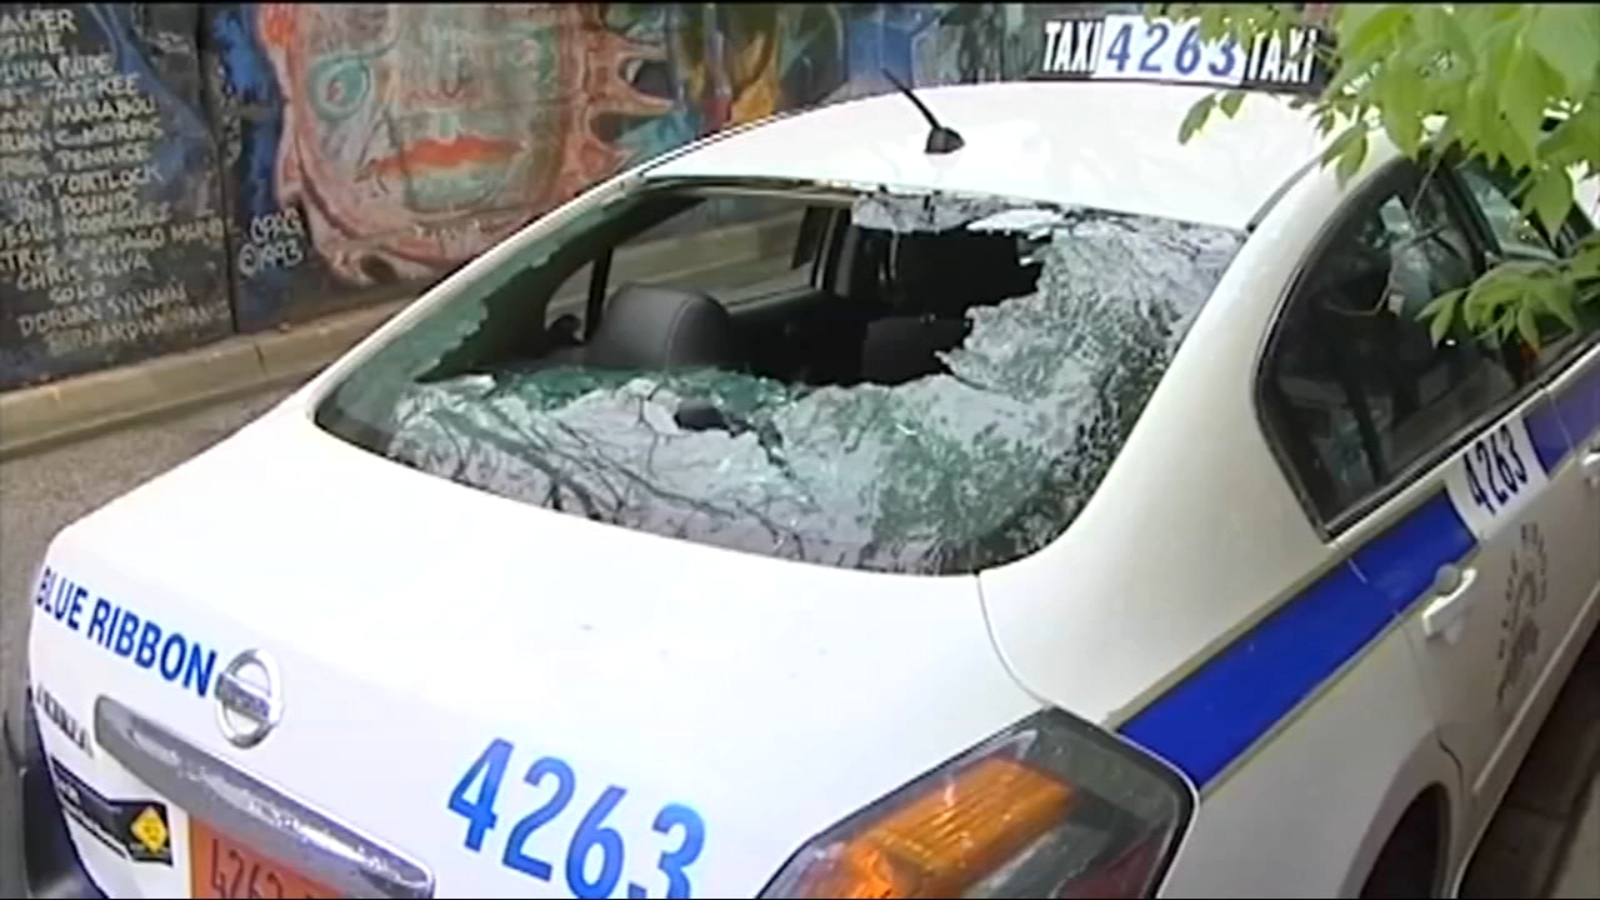 At least 12 car windshields, windows smashed in Rogers Park